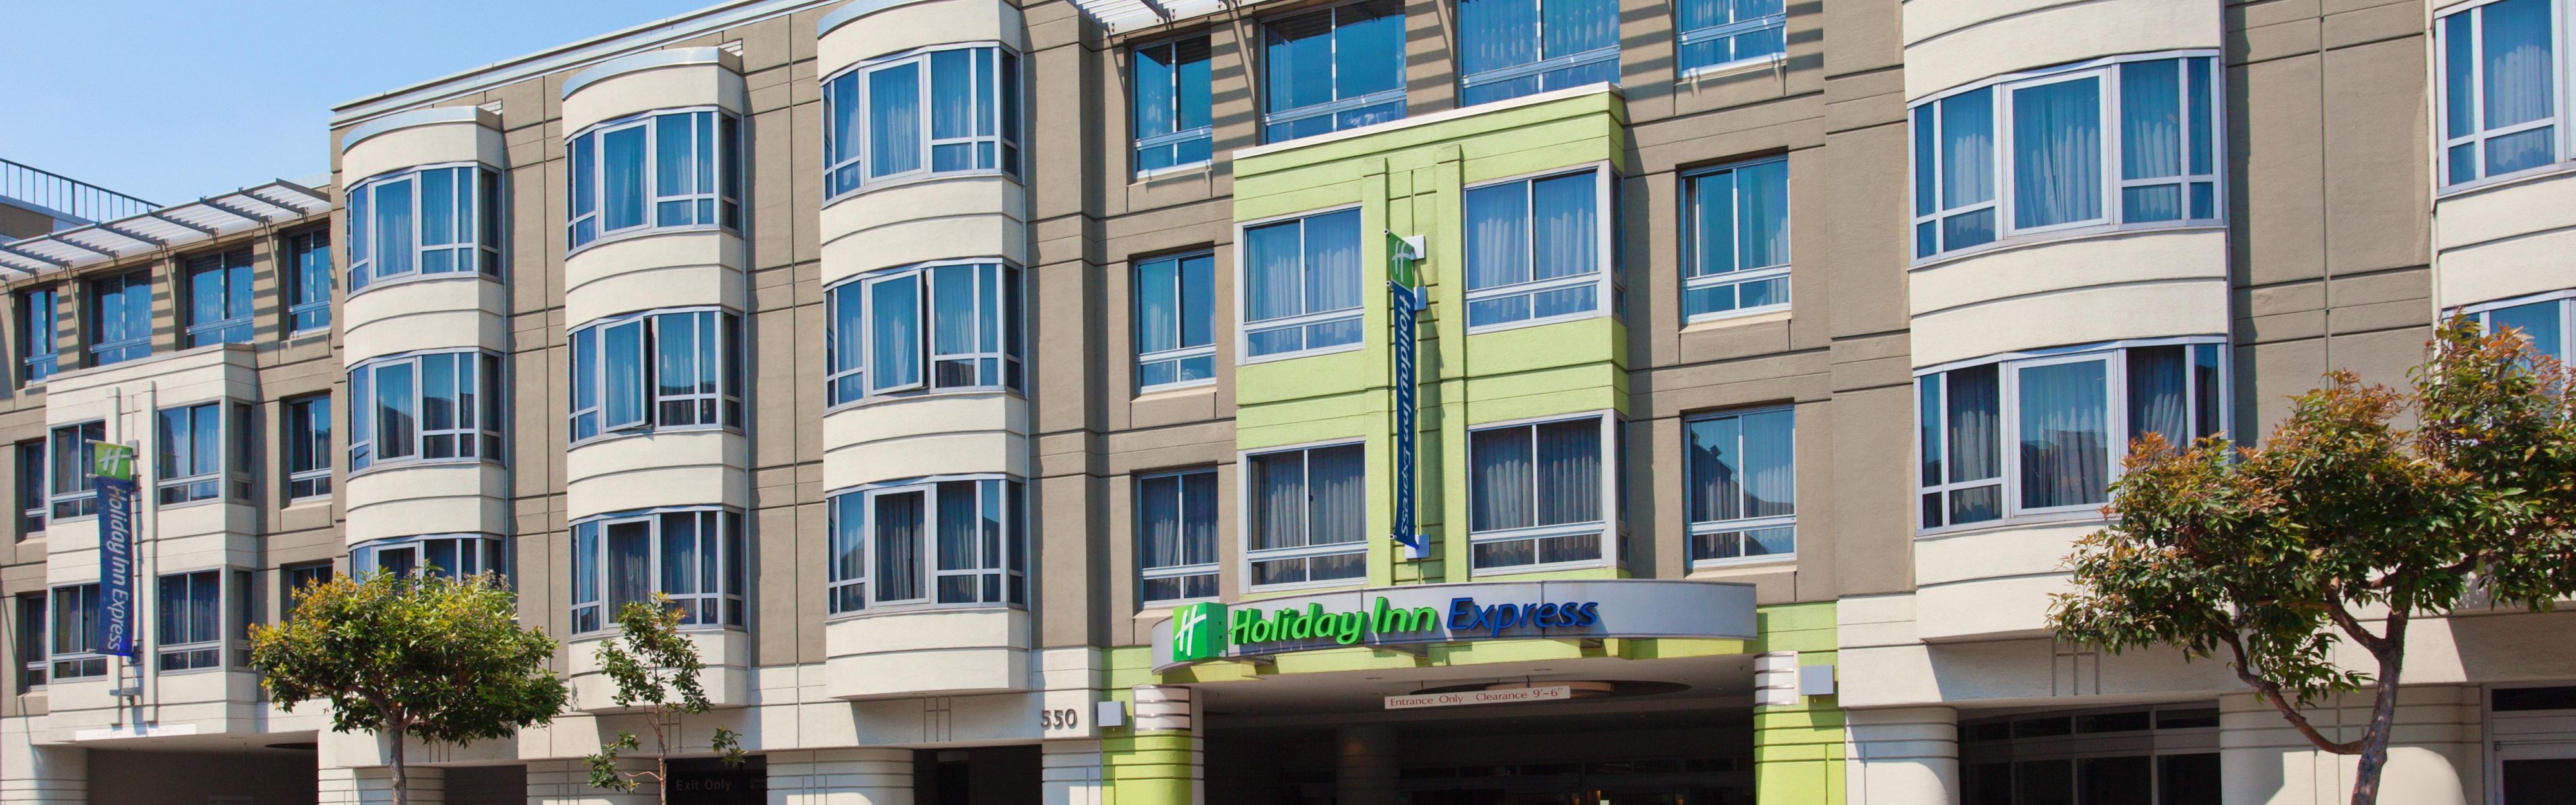 Hotels Near Fishermans Wharf San Francisco Ca Gallery Of